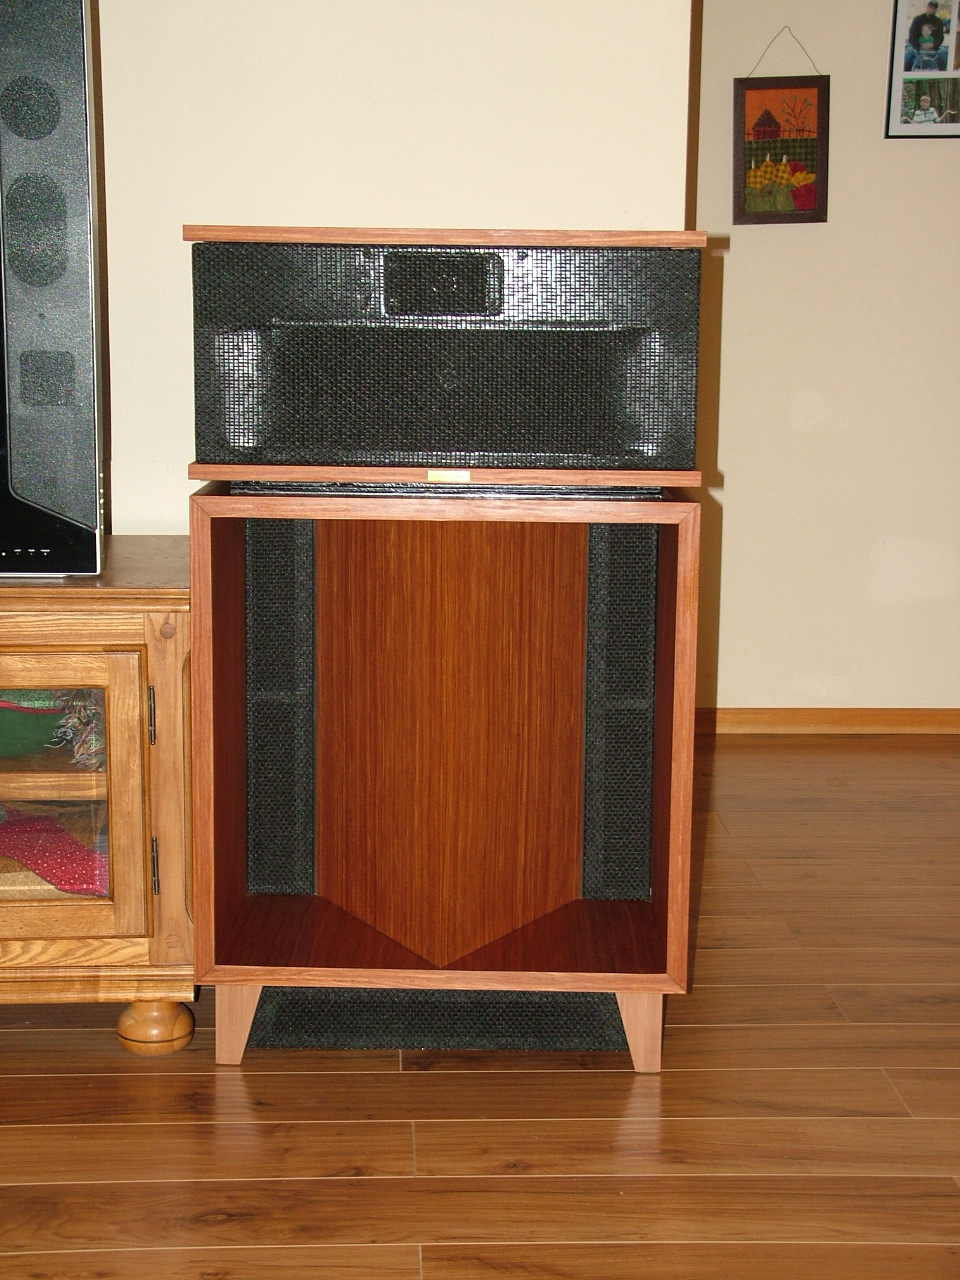 pictures of another 39 nother bass reflex mod technical modifications the klipsch audio community. Black Bedroom Furniture Sets. Home Design Ideas